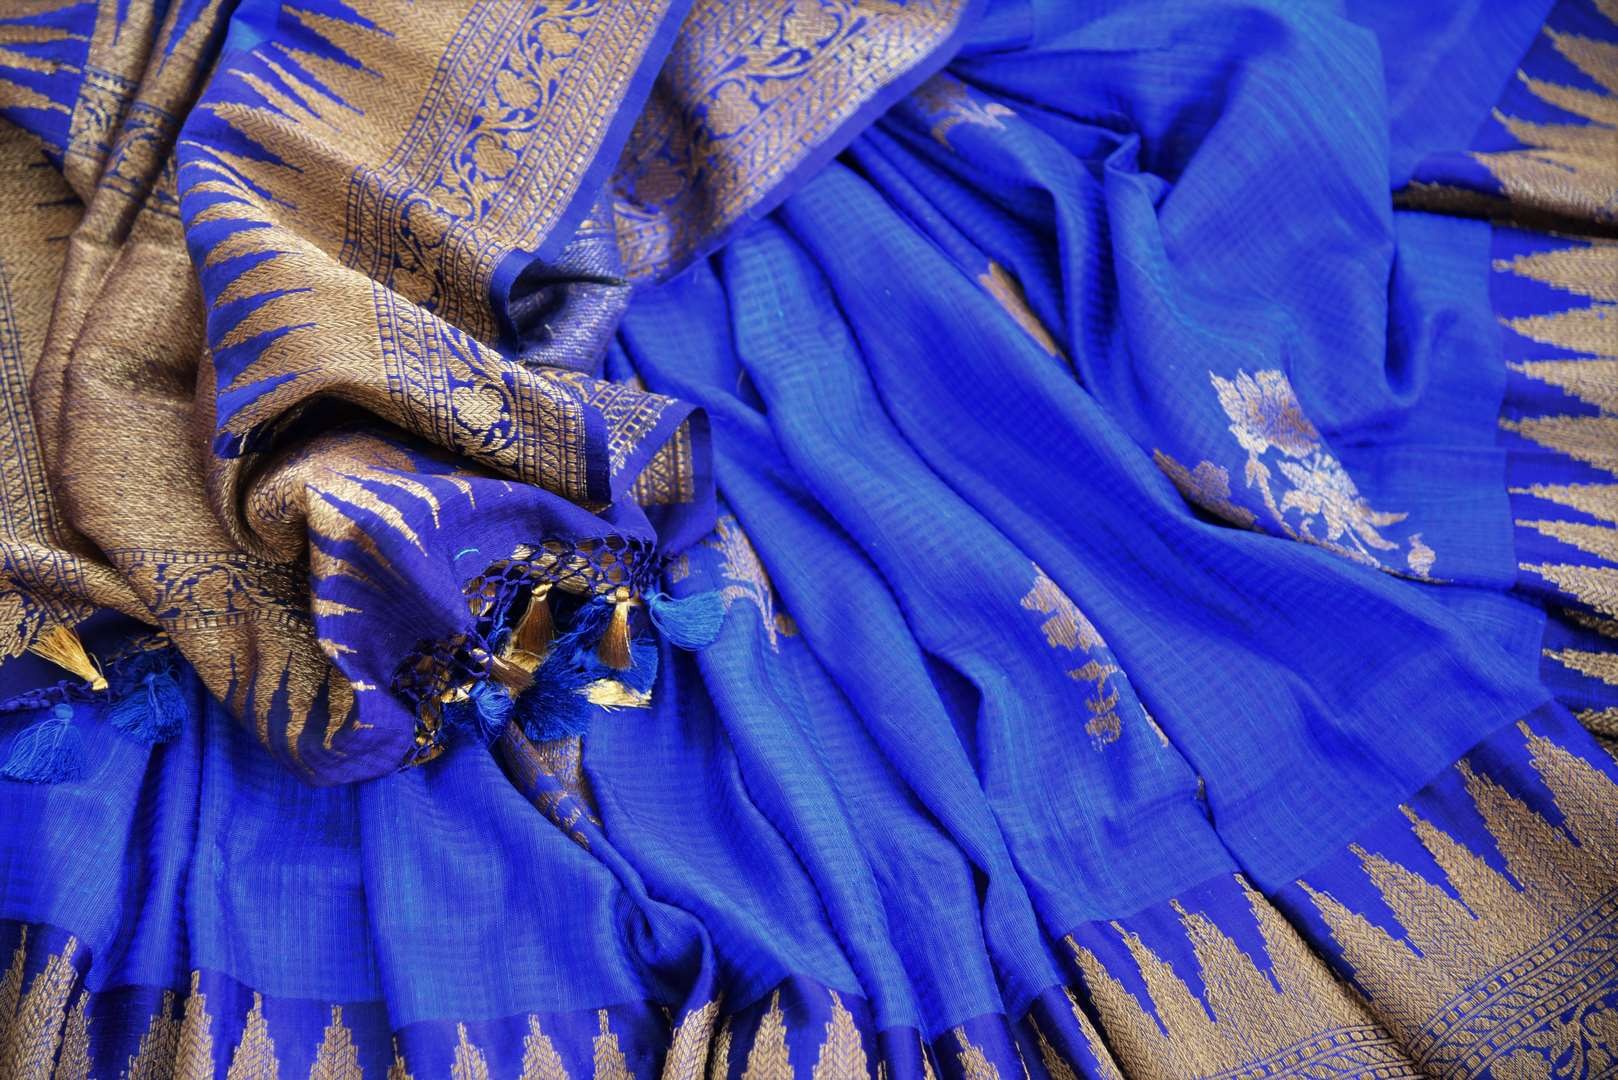 Buy traditional ink blue tussar katan Banarasi saree online in USA with zari border. The saree is a perfect drape for a rich ethnic Indian look. Spoil yourself with an exquisite collection of Indian Banarasi saris in USA available at Pure Elegance Indian clothing store. -details